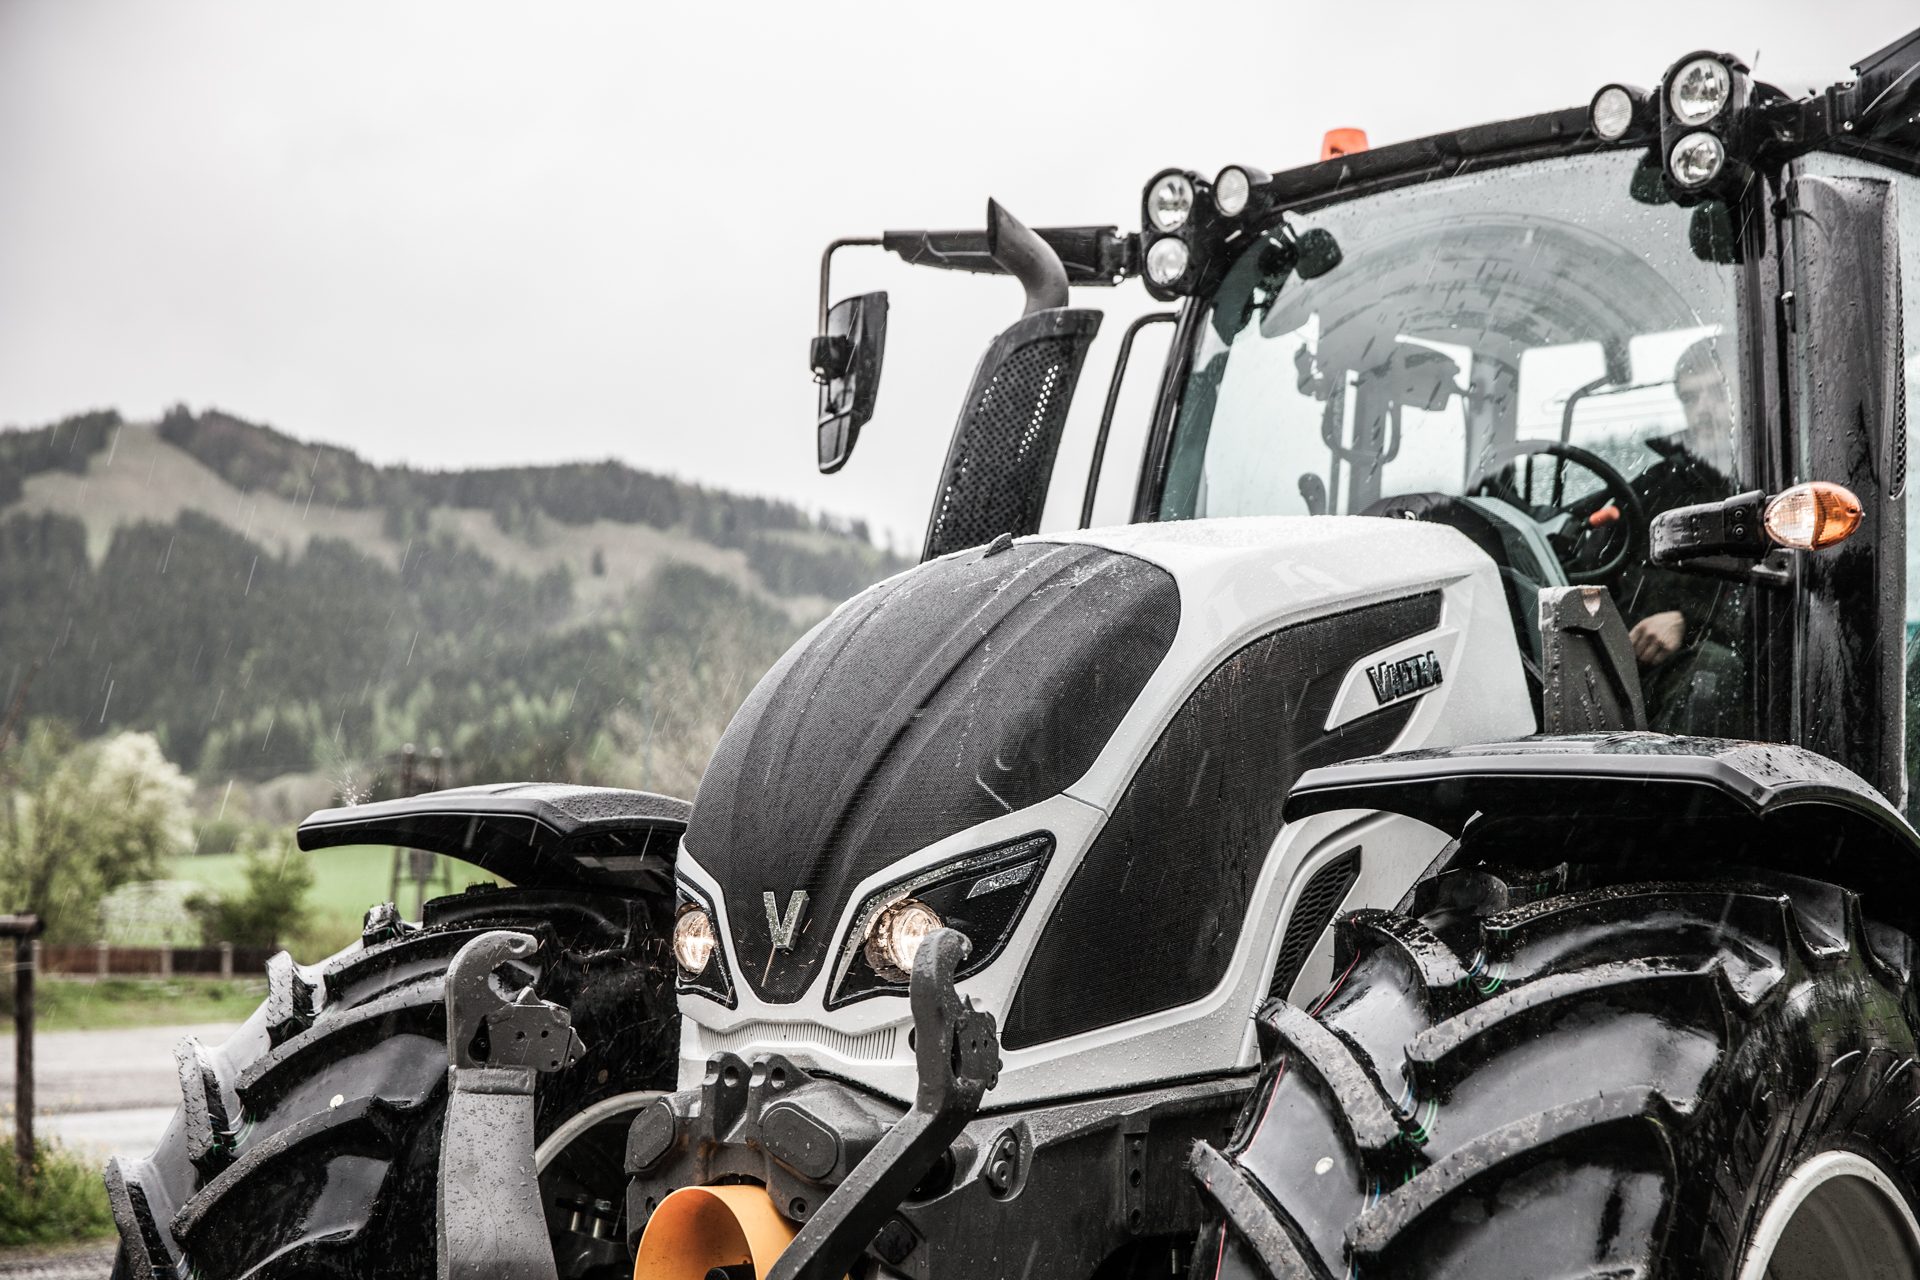 Valtra-Latest-Tracor-Model